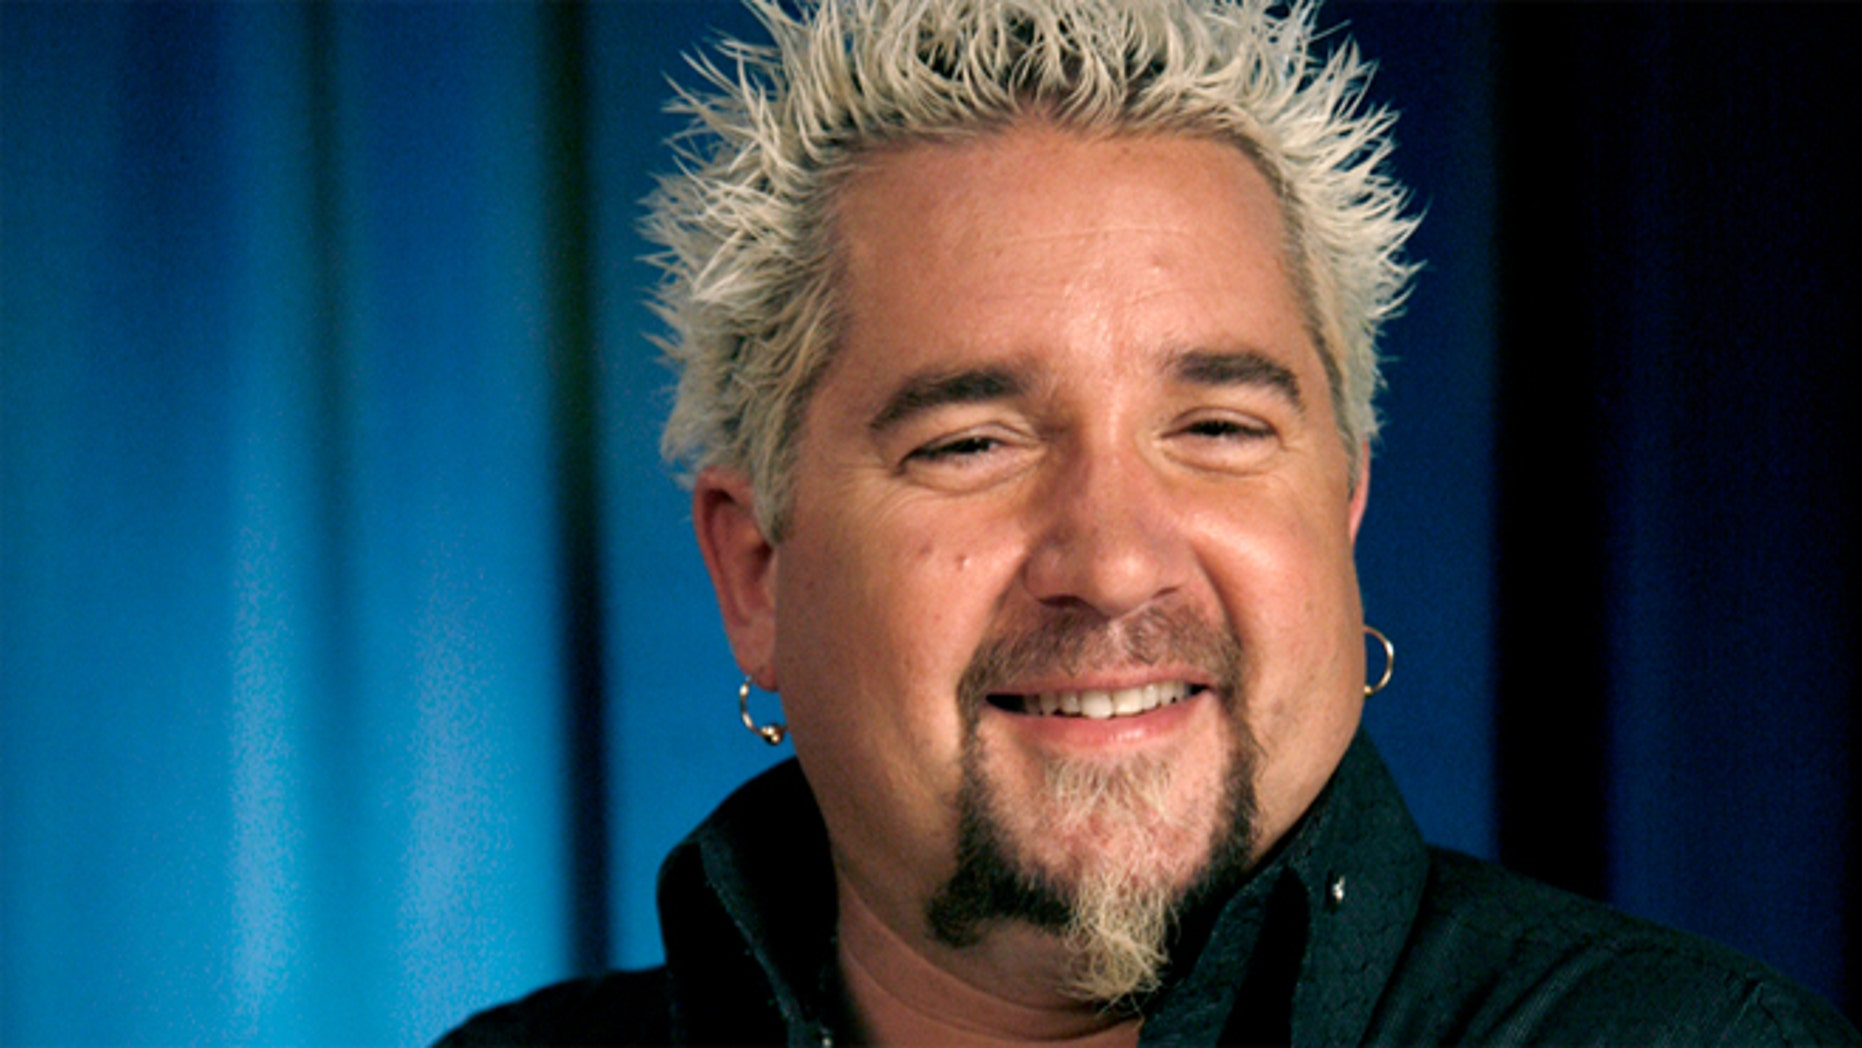 Chef–restaurateur and TV personality Guy Fieri